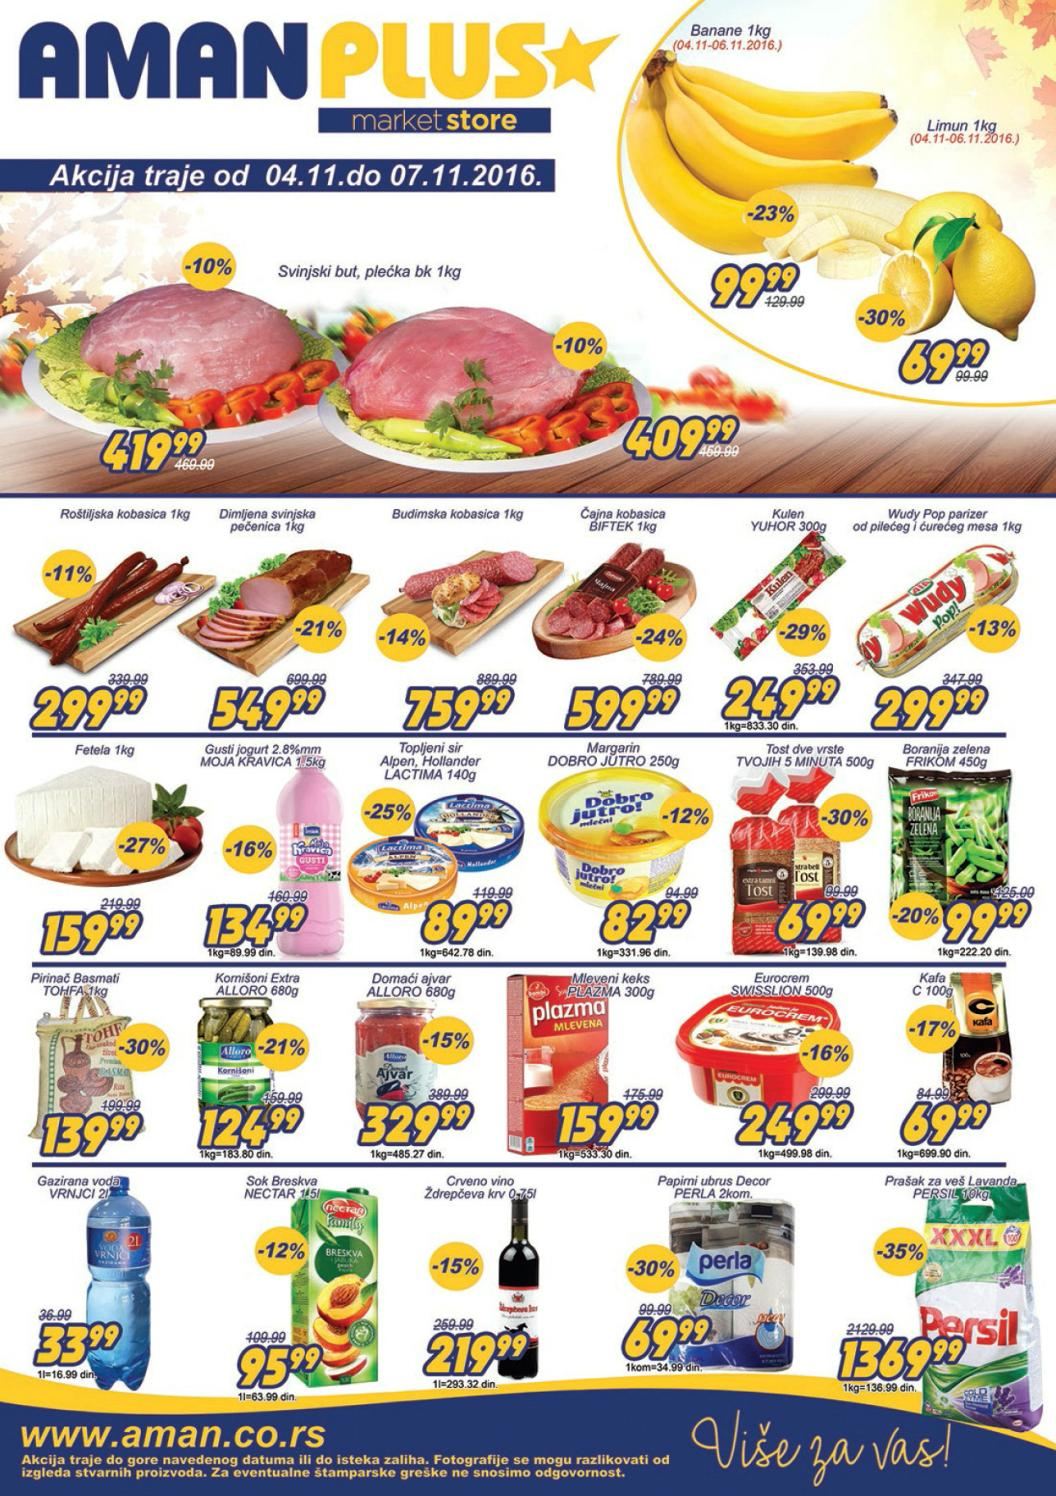 Nova vikend akcija od 04.- 06.11.2016. u Aman i Aman Plus supermarketima.